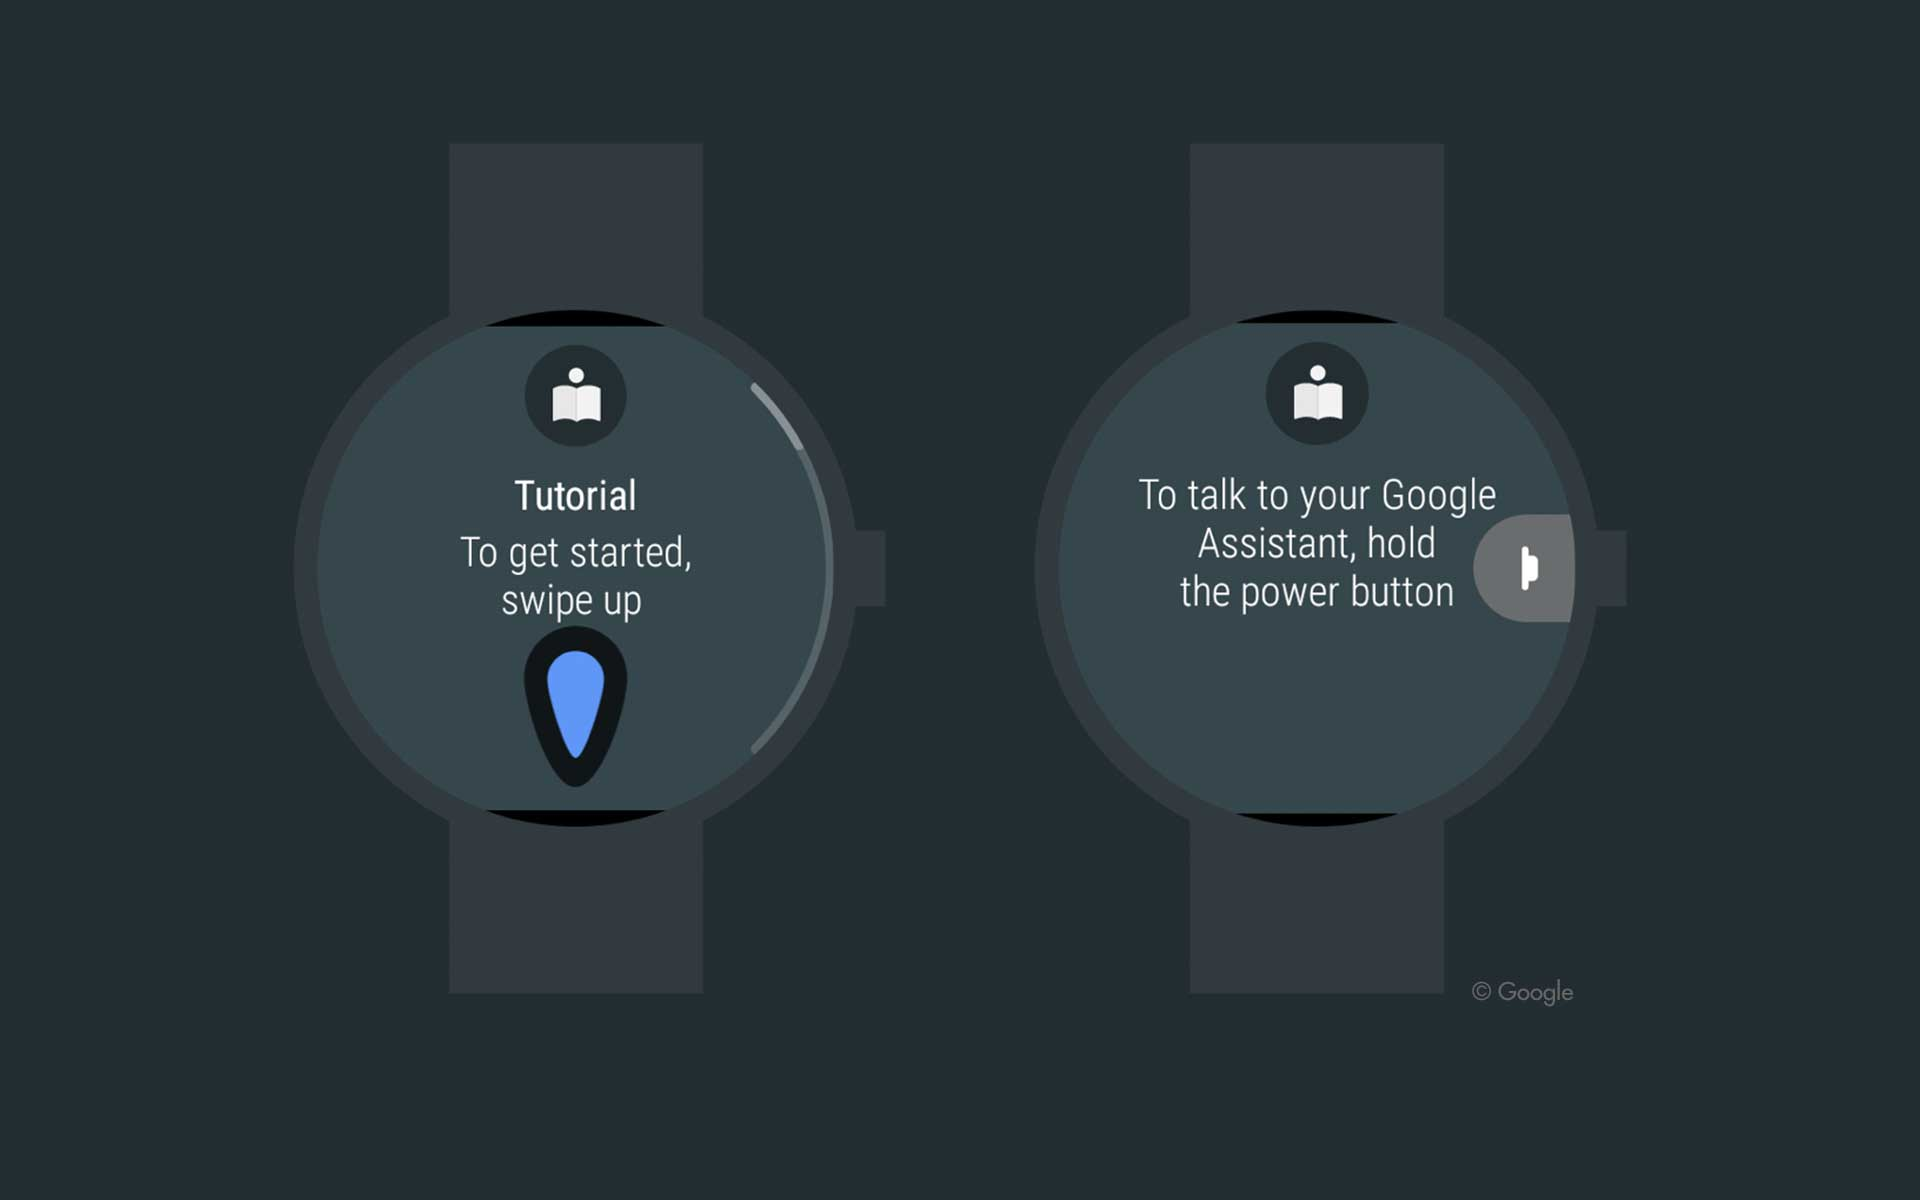 Images showing new user tutorial on Android Wear smart watch